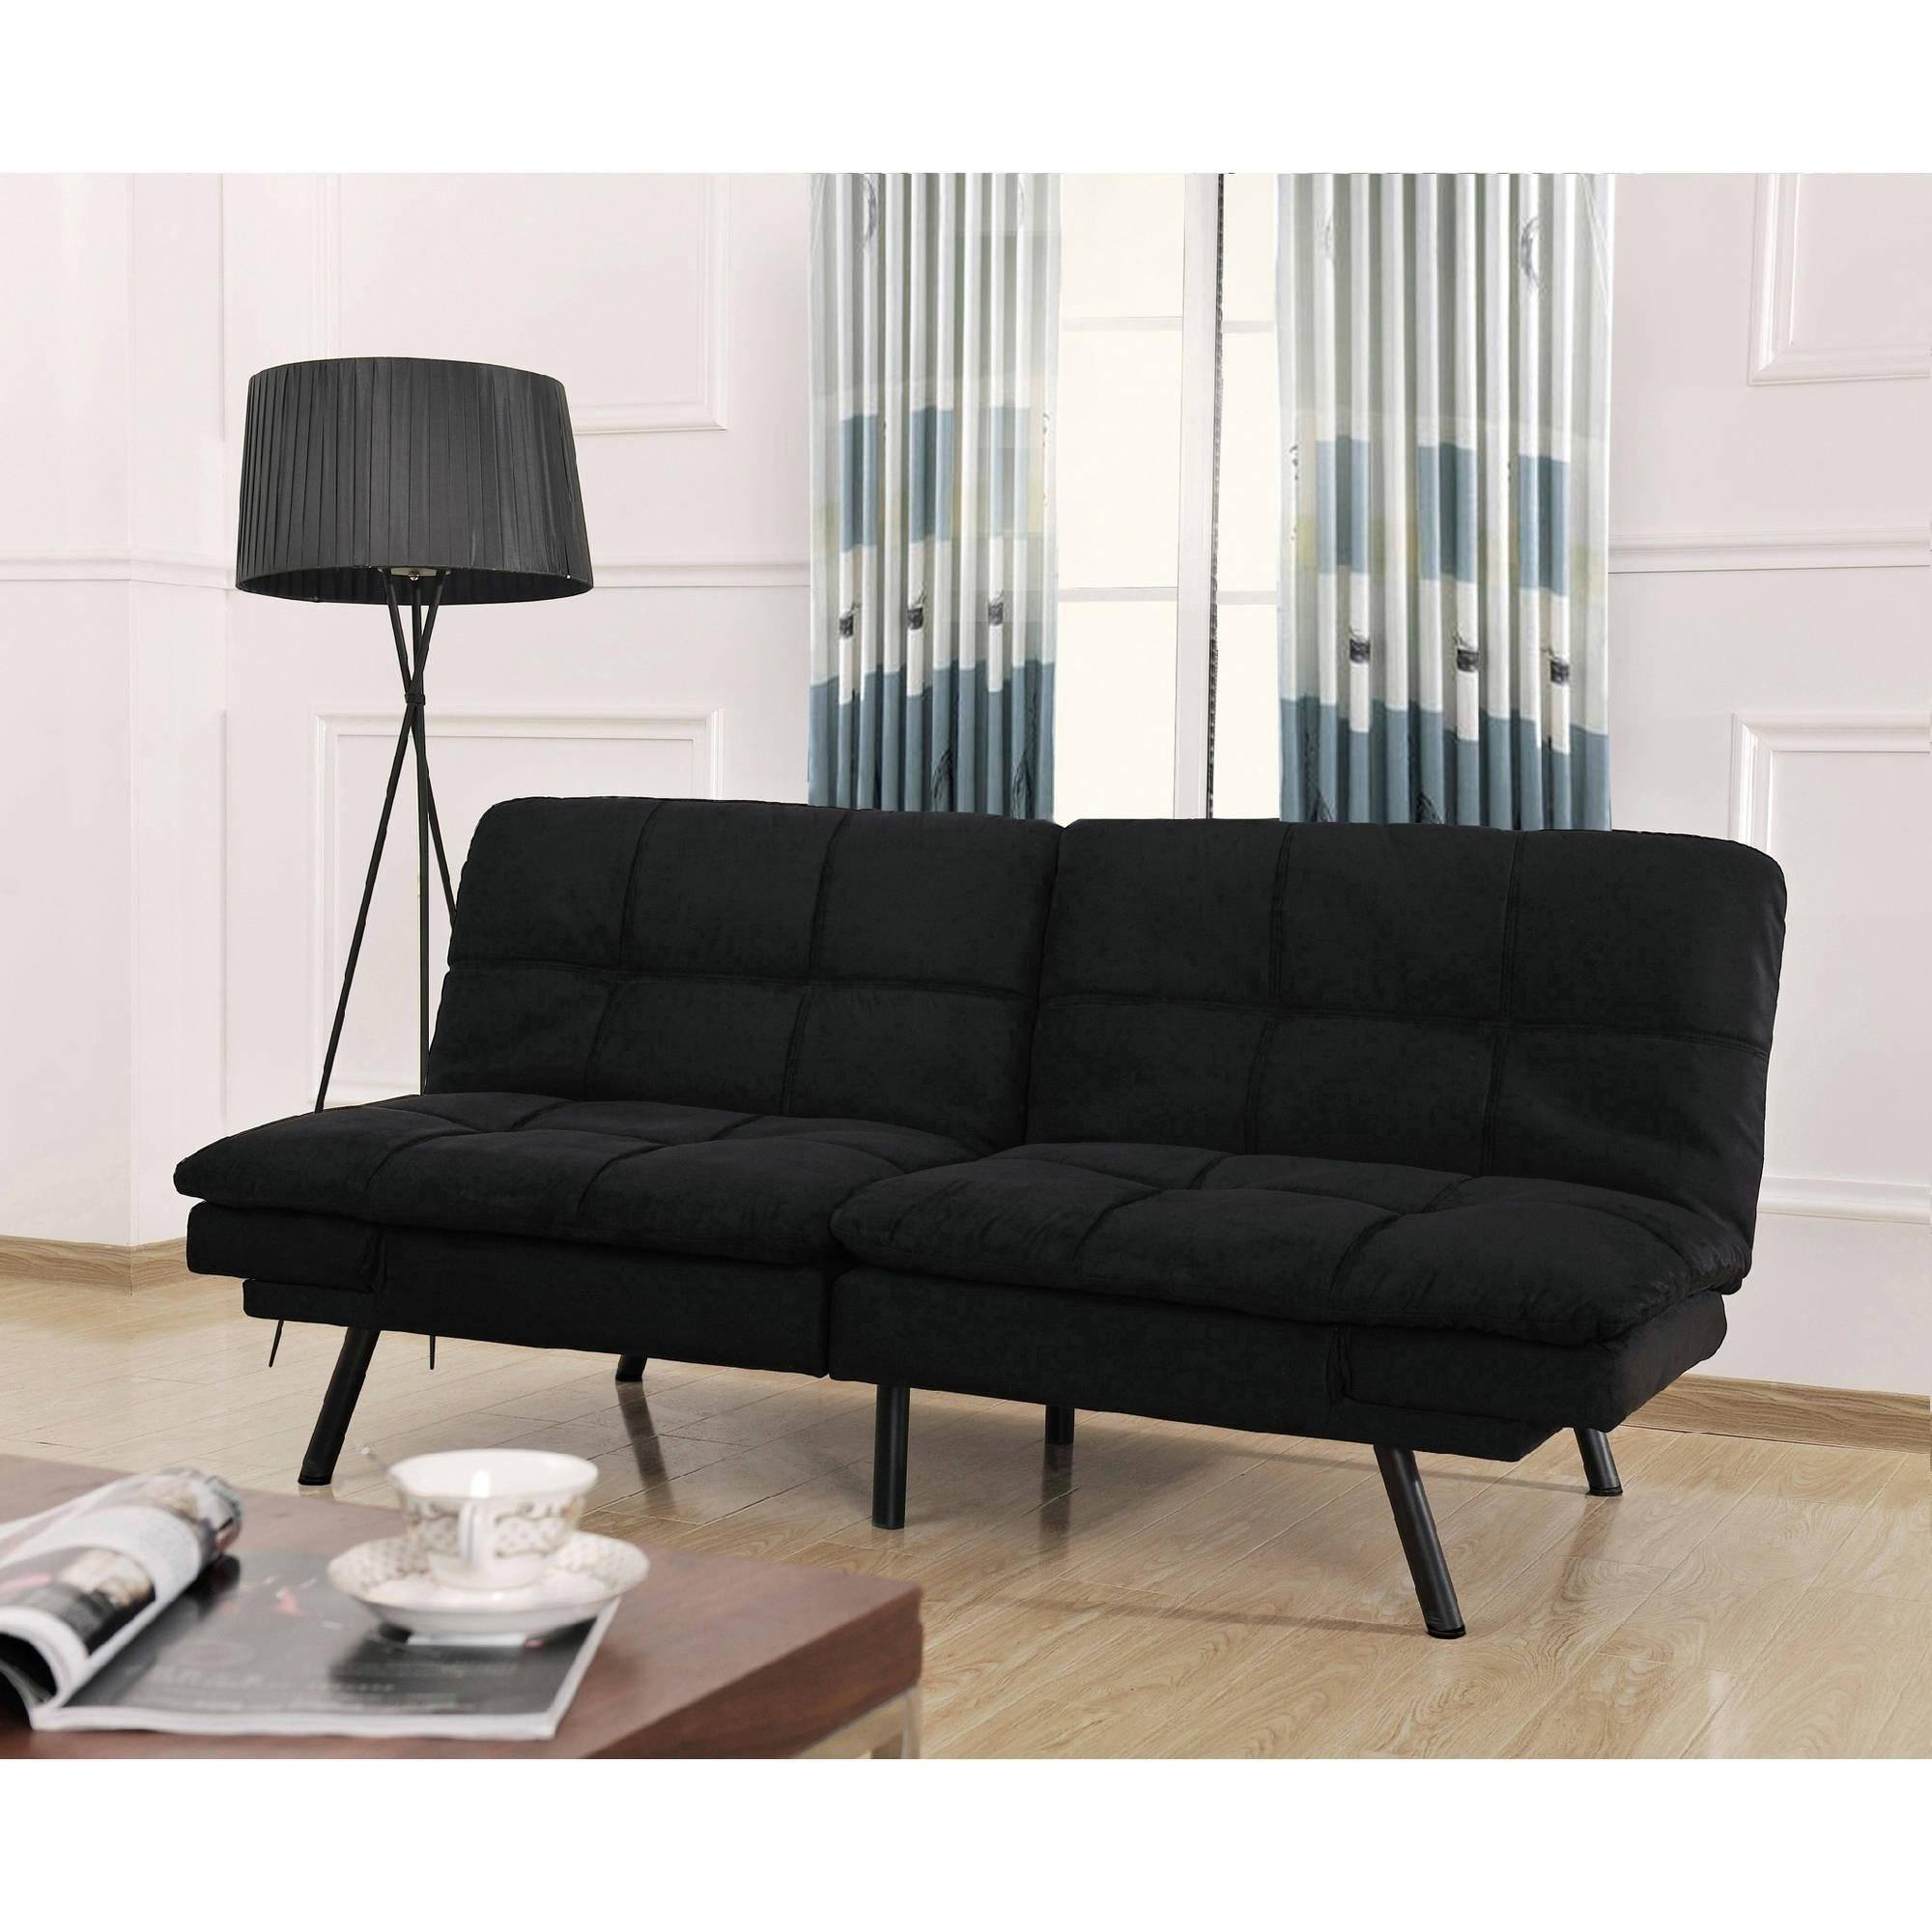 Mainstays Contempo Futon Sofa Bed 33 With Beds